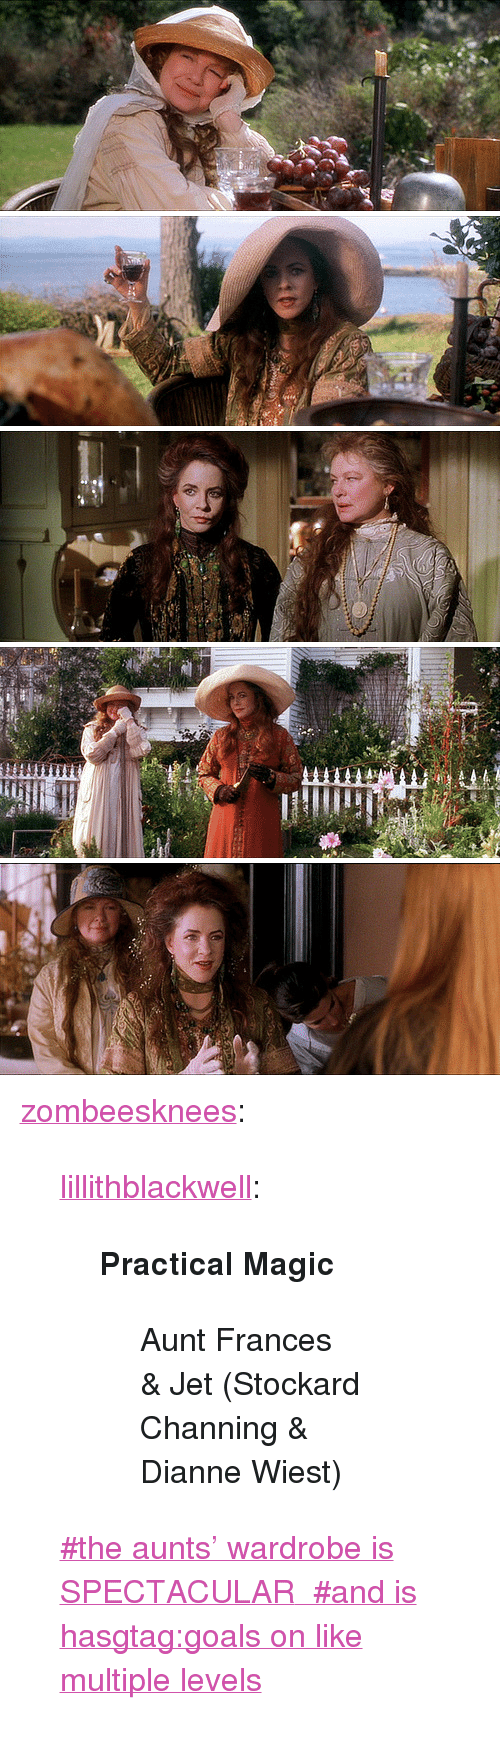 """Goals, Tumblr, and Blog: <p><a href=""""http://zombeesknees.tumblr.com/post/167634700095/lillithblackwell-practical-magic-aunt-frances"""" class=""""tumblr_blog"""">zombeesknees</a>:</p><blockquote> <p><a href=""""http://lillithblackwell.tumblr.com/post/97220094721/practical-magic-aunt-frances-jet-stockard"""" class=""""tumblr_blog"""">lillithblackwell</a>:</p> <blockquote> <p><strong>Practical Magic</strong></p> <blockquote> <p>Aunt Frances &amp; Jet (Stockard Channing &amp; Dianne Wiest)</p> </blockquote> </blockquote> <p style=""""""""><a href=""""https://www.tumblr.com/tagged/the-aunts%27-wardrobe-is-SPECTACULAR"""">#the aunts' wardrobe is SPECTACULAR</a><a href=""""https://www.tumblr.com/tagged/and-is-hasgtag%3Agoals-on-like-multiple-levels""""> #and is hasgtag:goals on like multiple levels</a><br/></p> </blockquote>"""